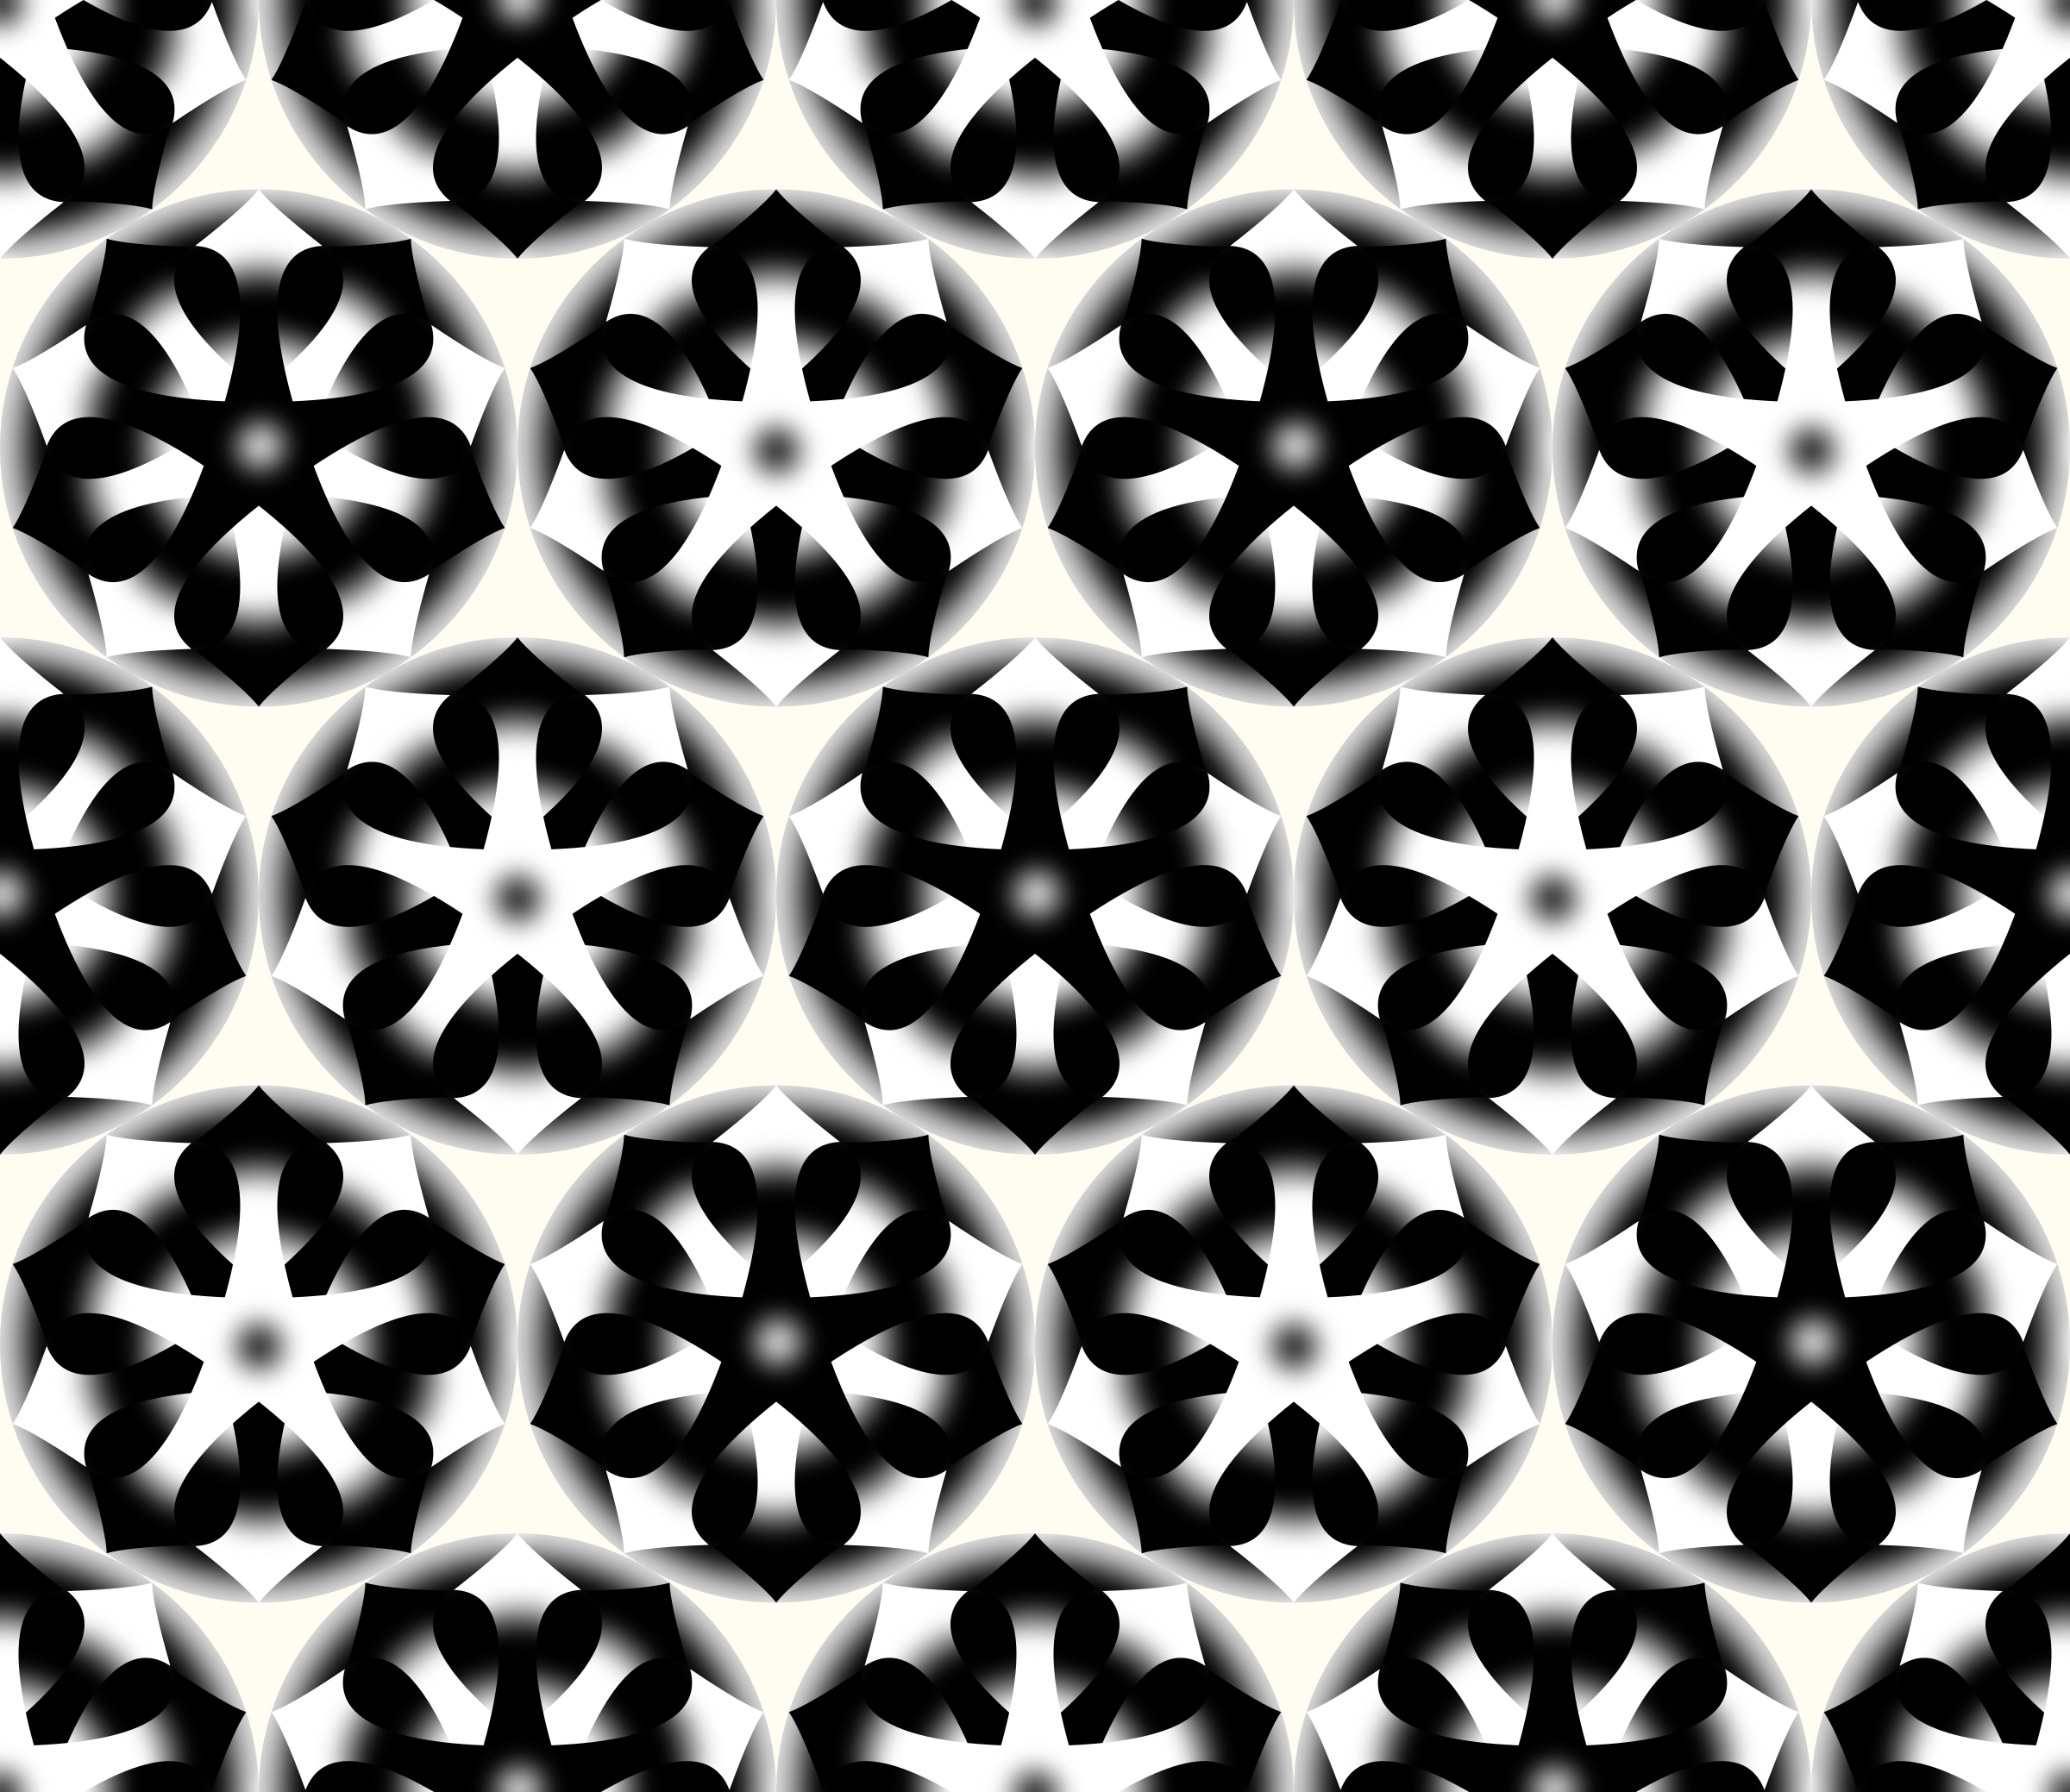 Background pattern 58 (greyscale) by Firkin